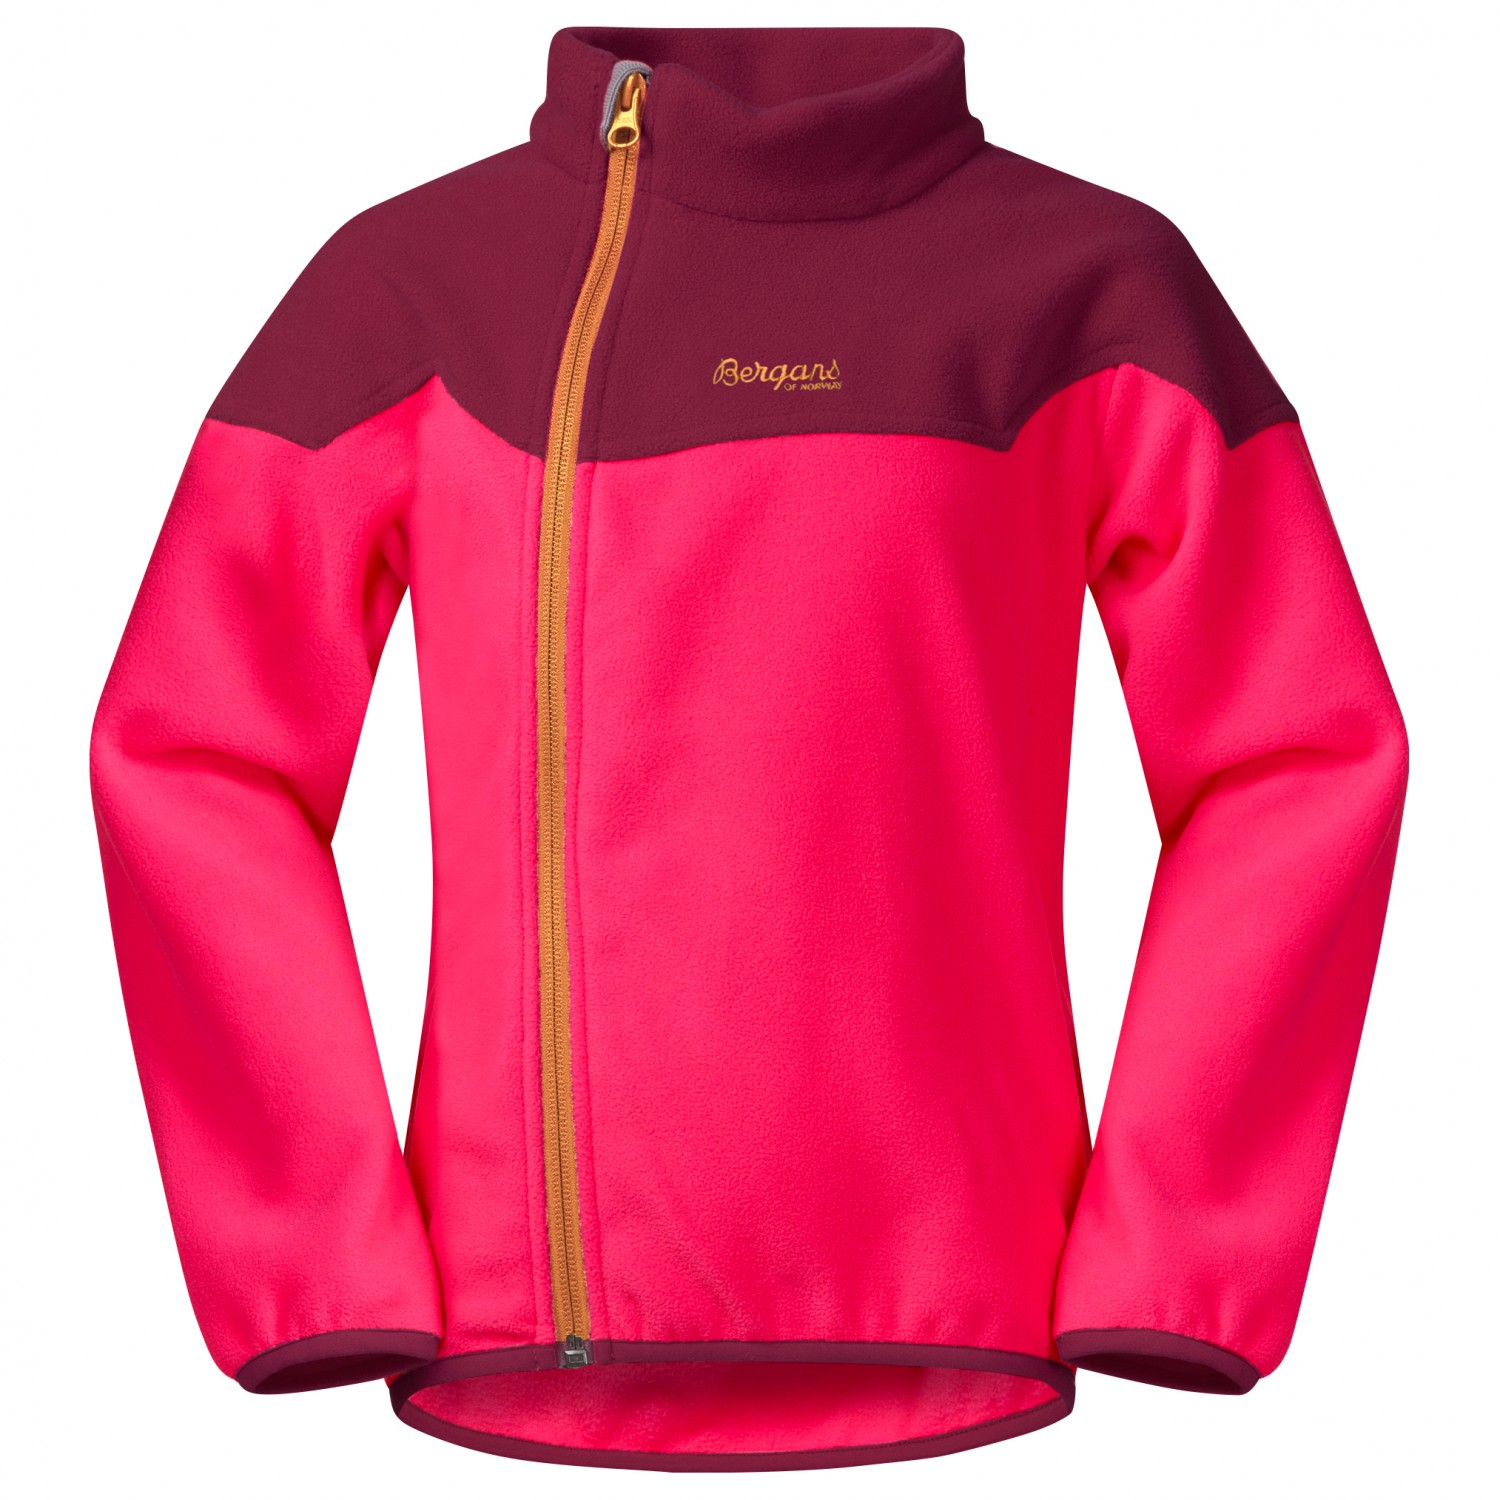 421d790b Bergans Ruffen Fleece Jacket - Fleece Jacket Kids | Buy online ...